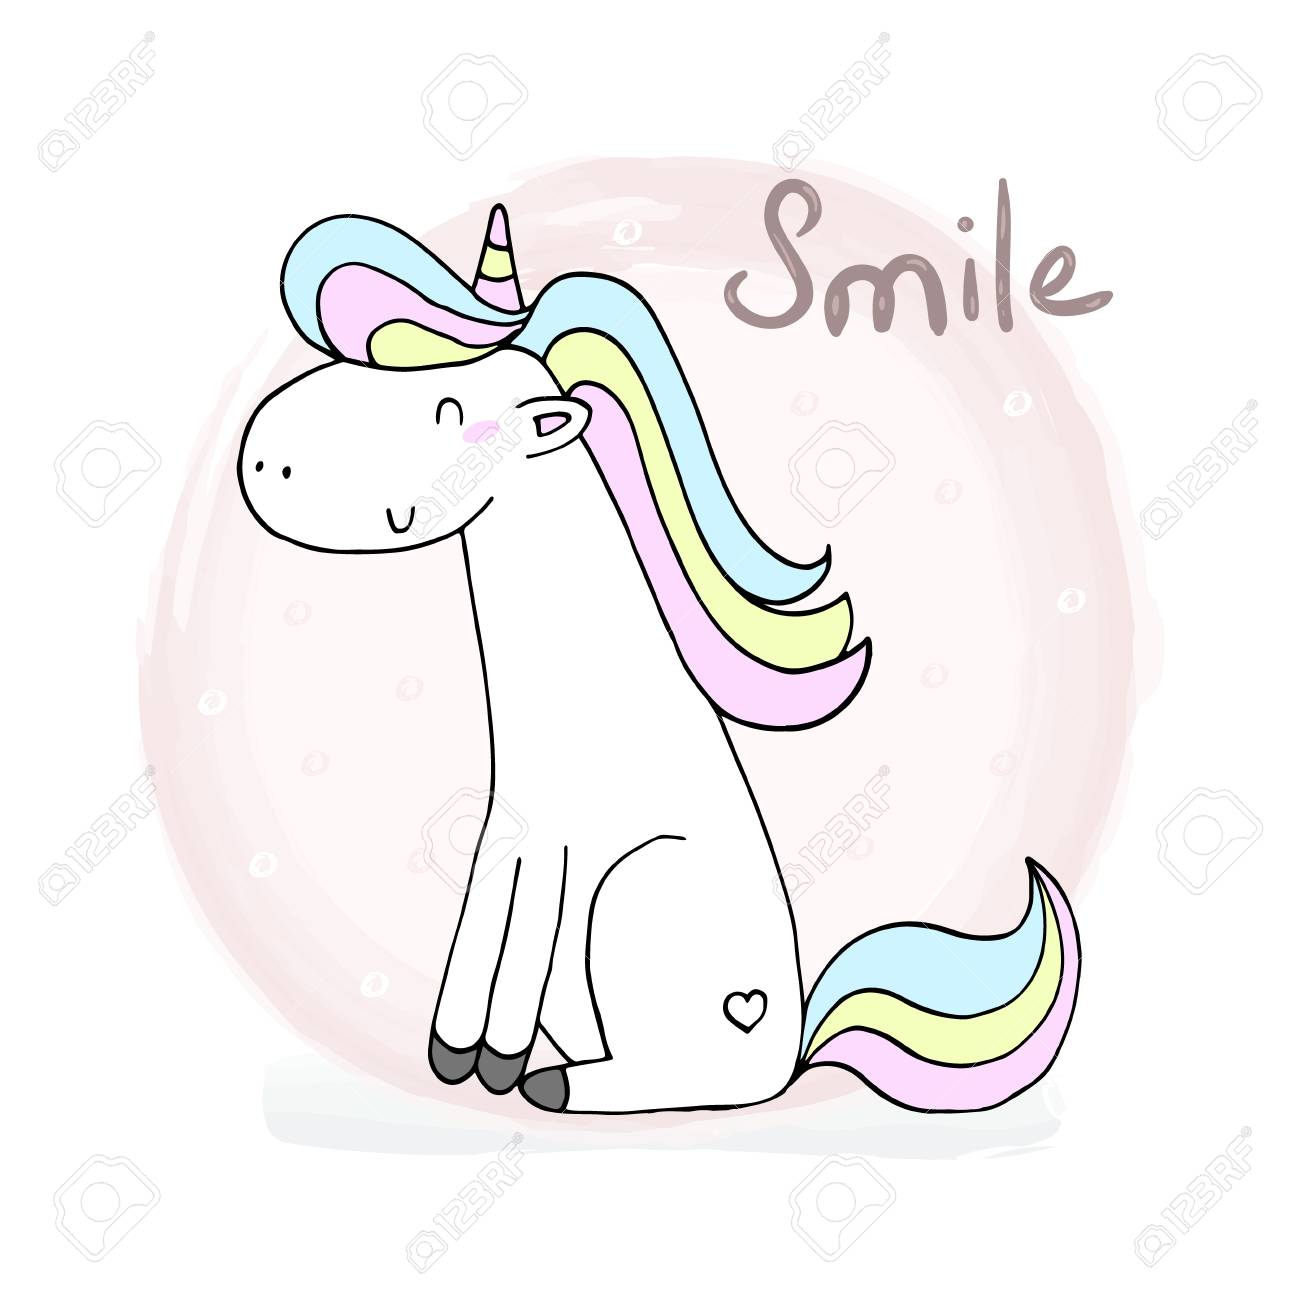 Cute Unicorn Print For Kids Smile Card Royalty Free Cliparts